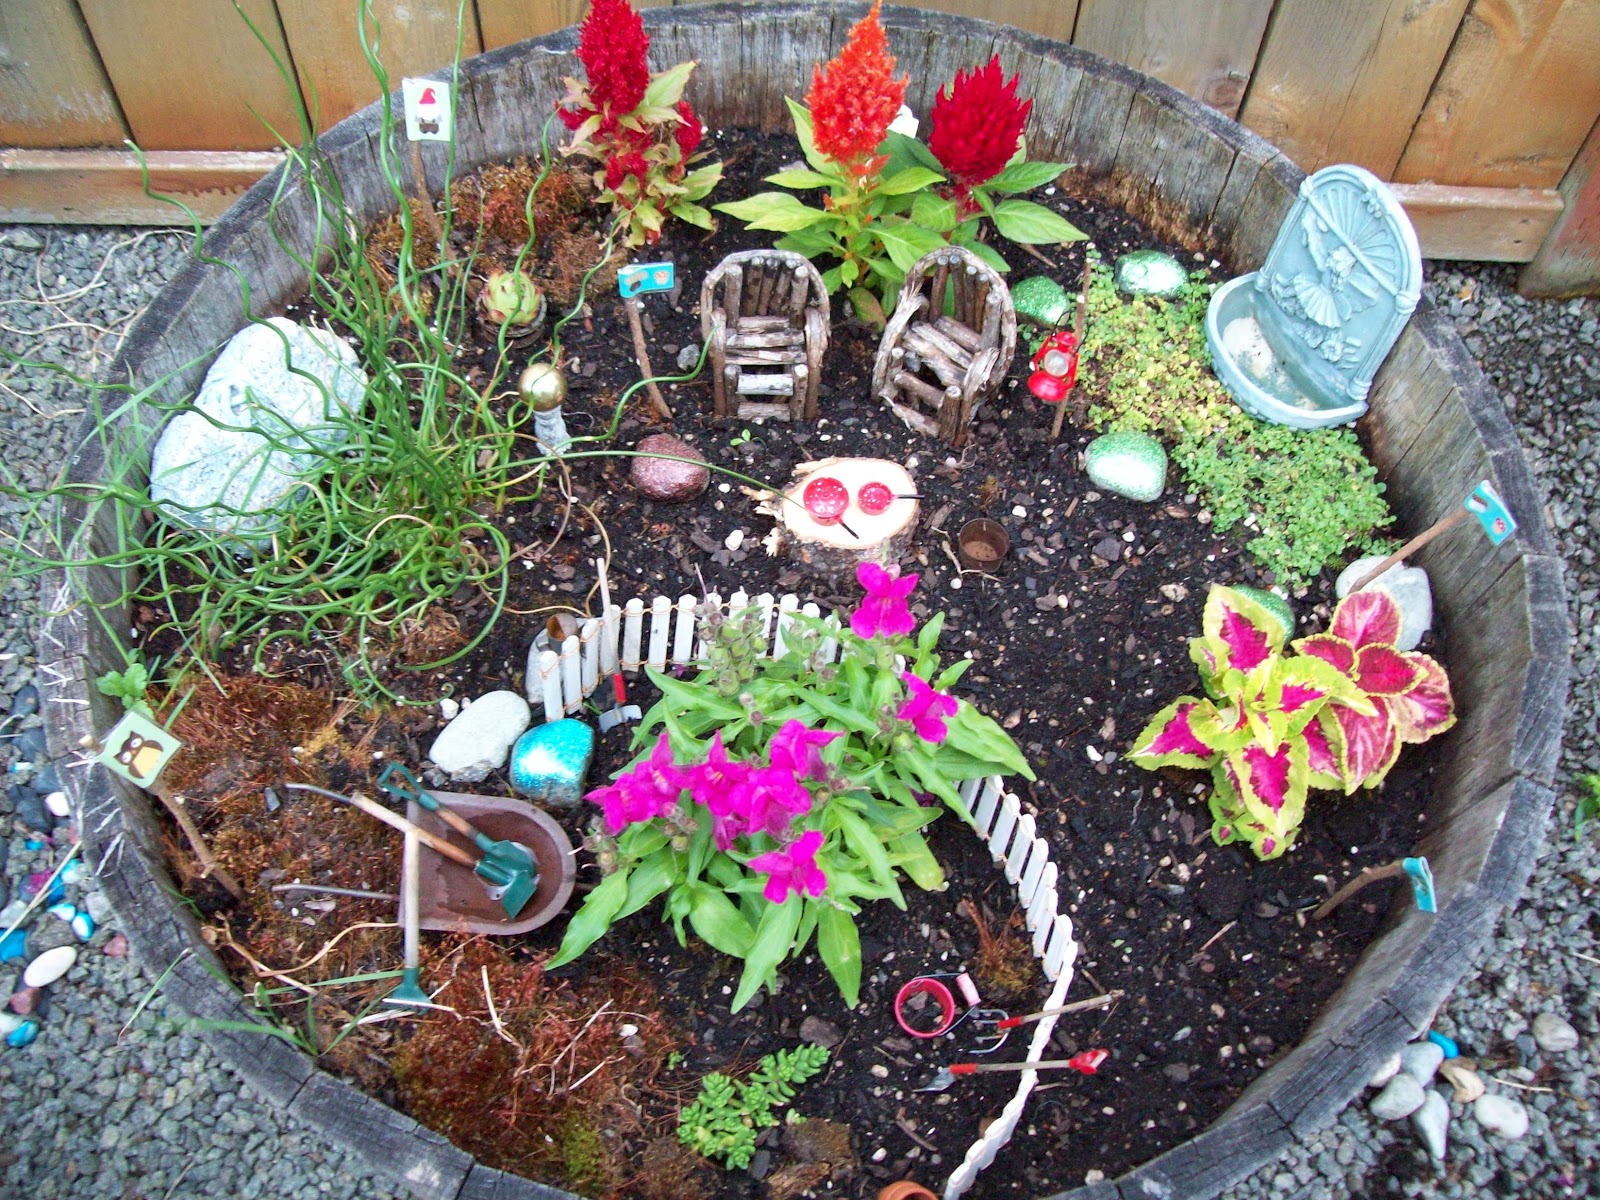 Fairy garden ornaments - Earlier This Year My Hubby Was Helping His Great Aunt Move And She Passed Along Some Fun Garden Ornaments To Us One Of The Items Was This Cute Little